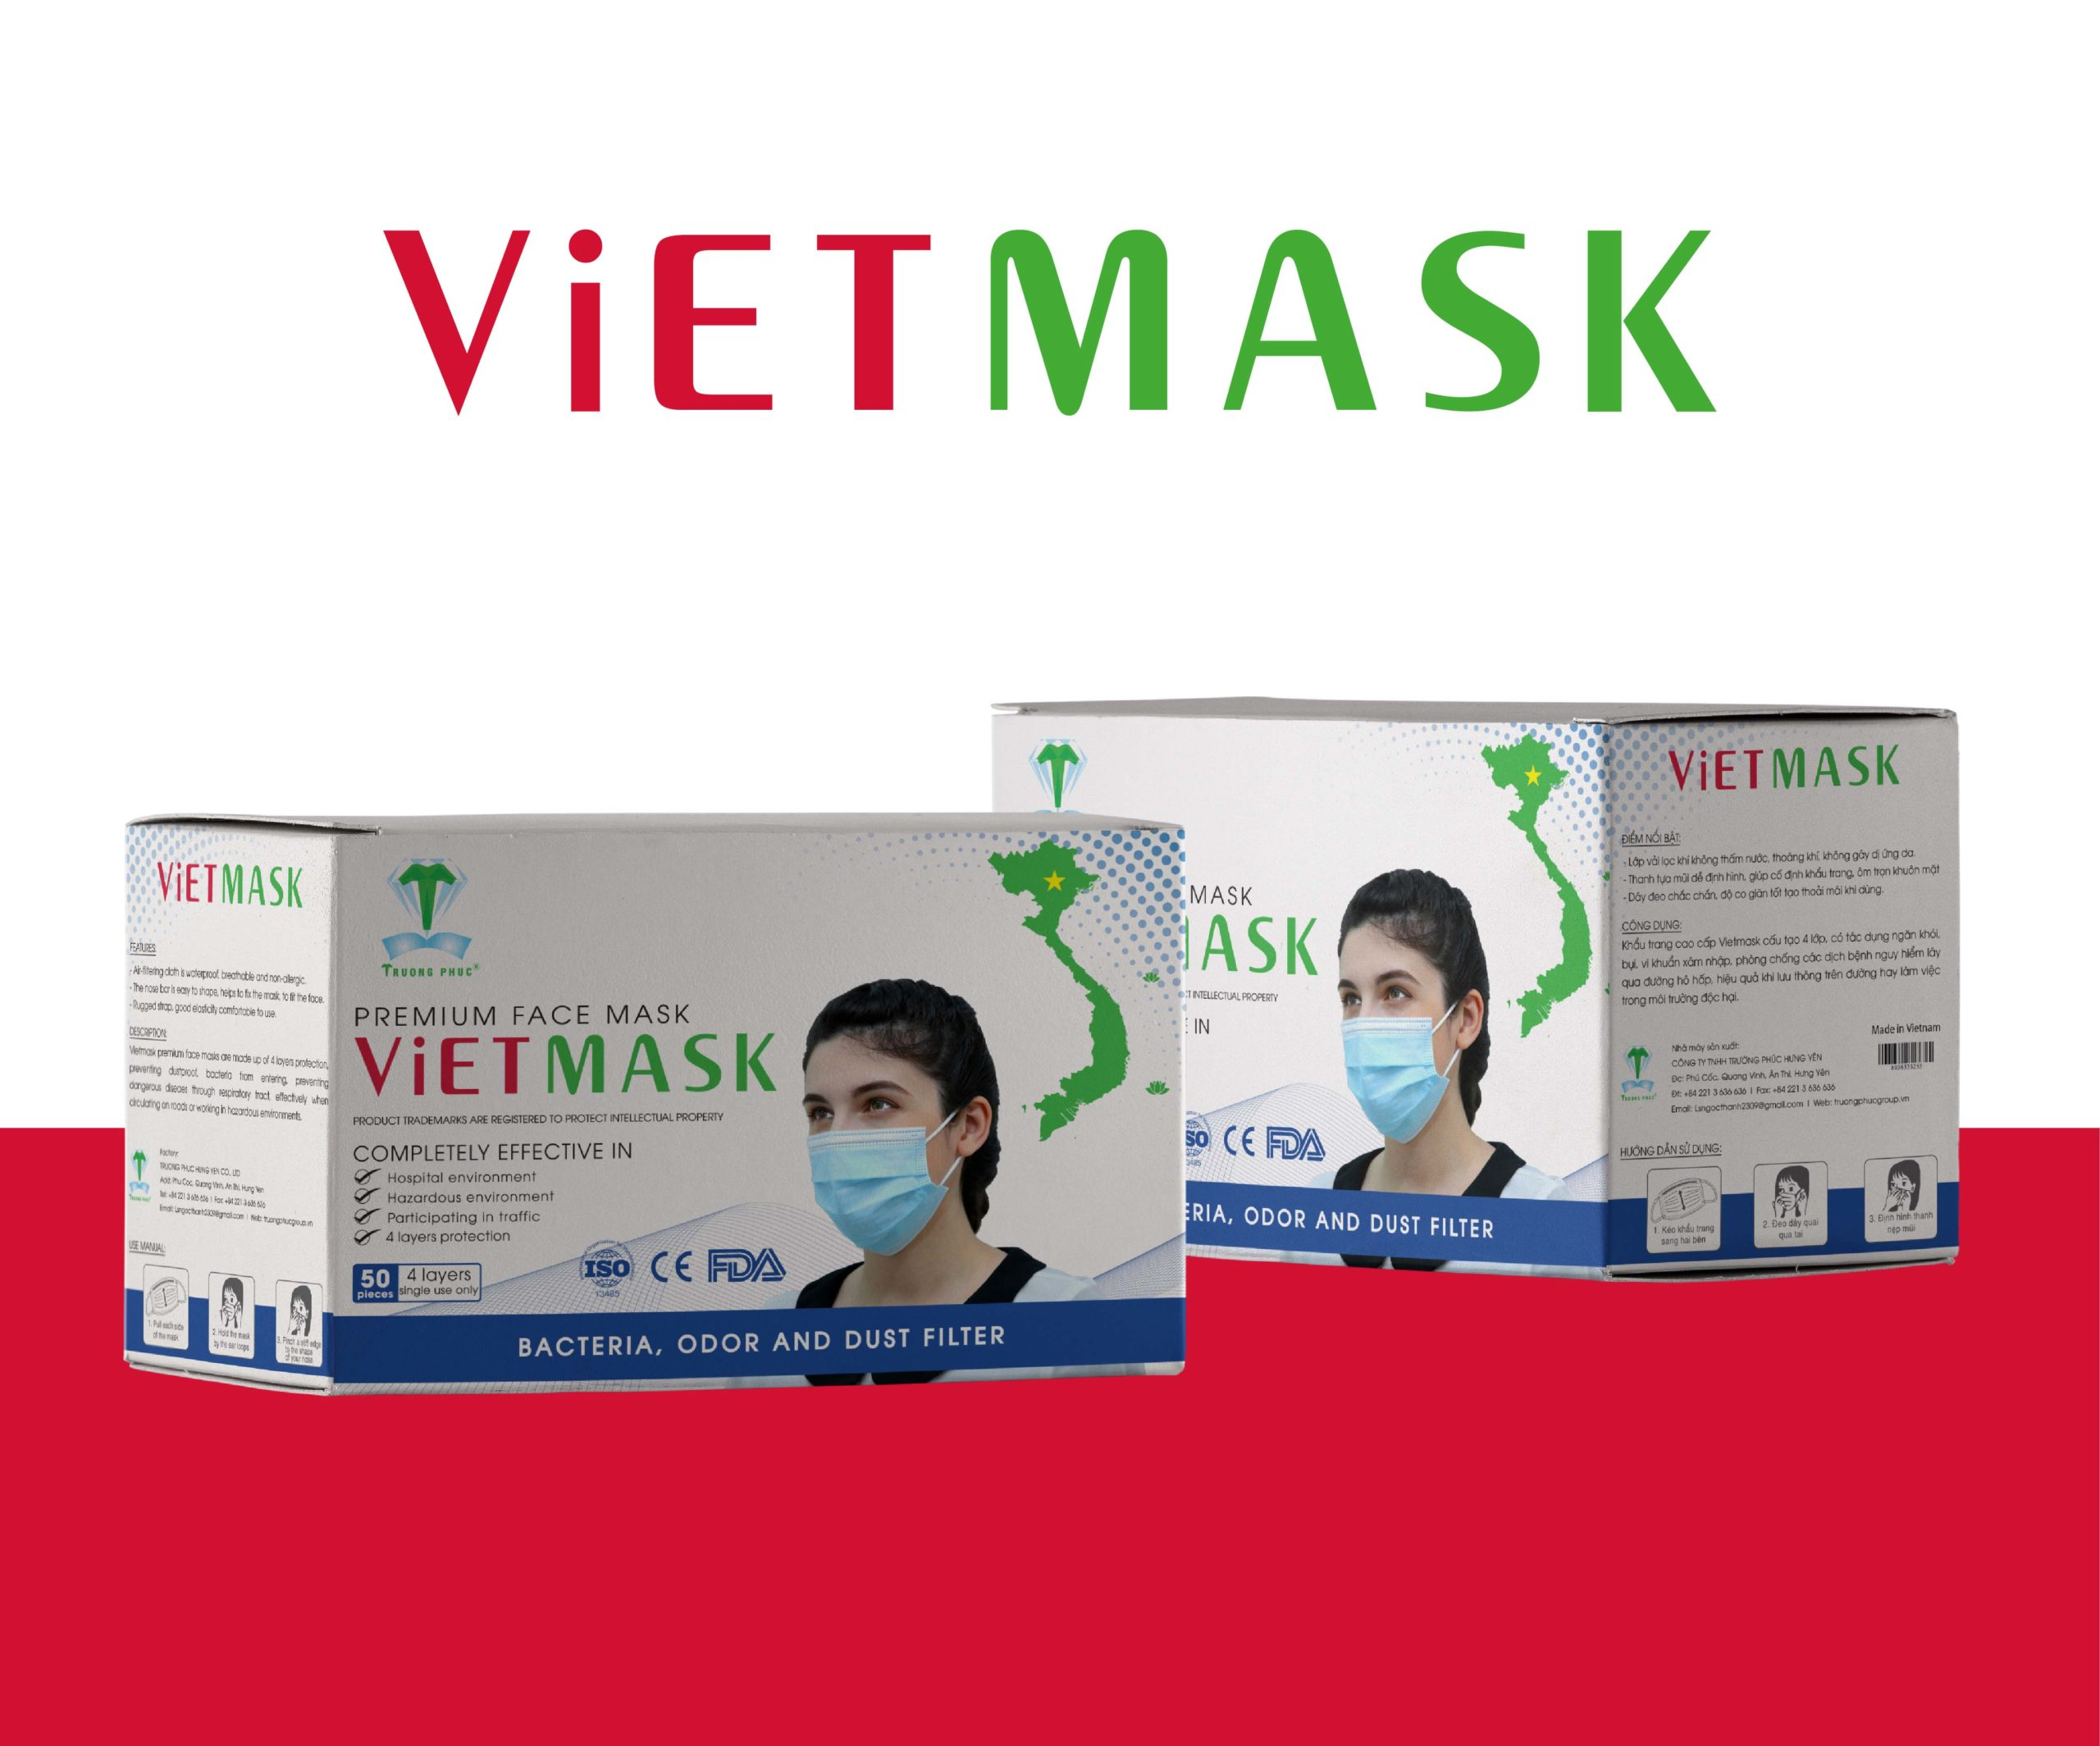 Face mask box - Vietmask